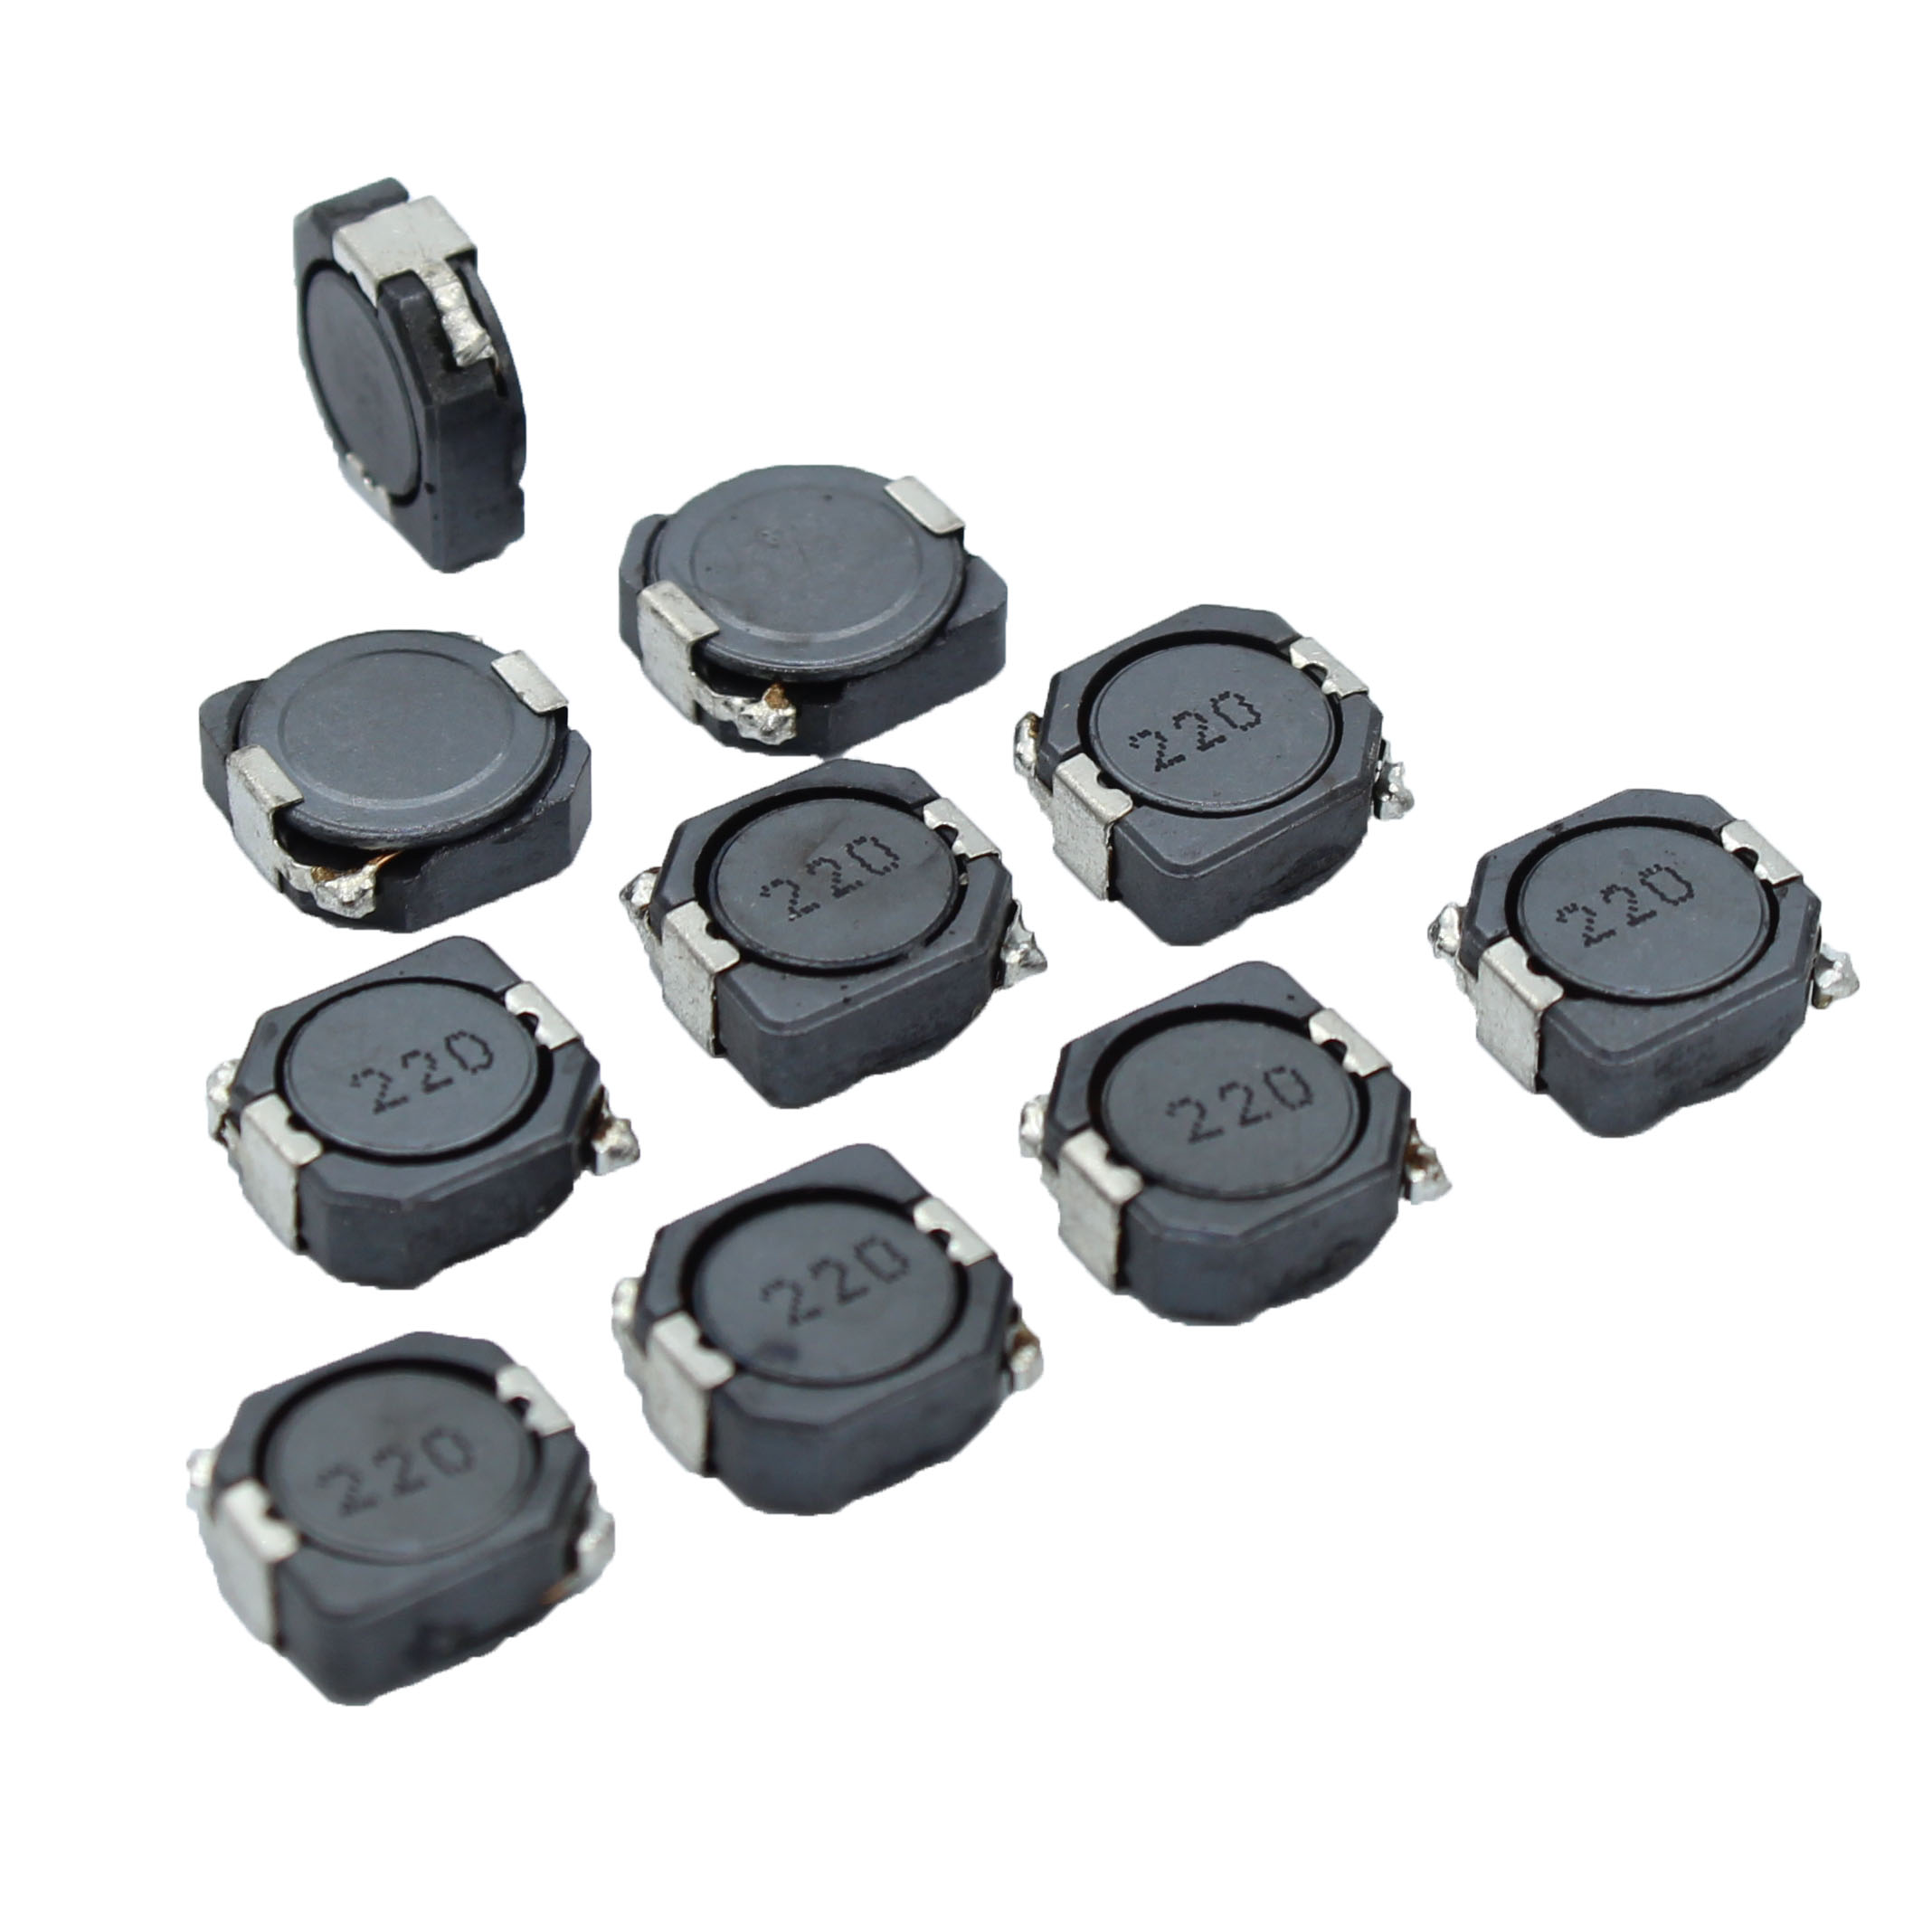 10PCS/lot SMD Power Inductors CDRH104R CD104R 10*10*4MM 2.2UH 3.3UH 4.7UH 6.8UH 10UH 22UH 33UH 47UH 68UH 100UH 150UH 220UH 330UH